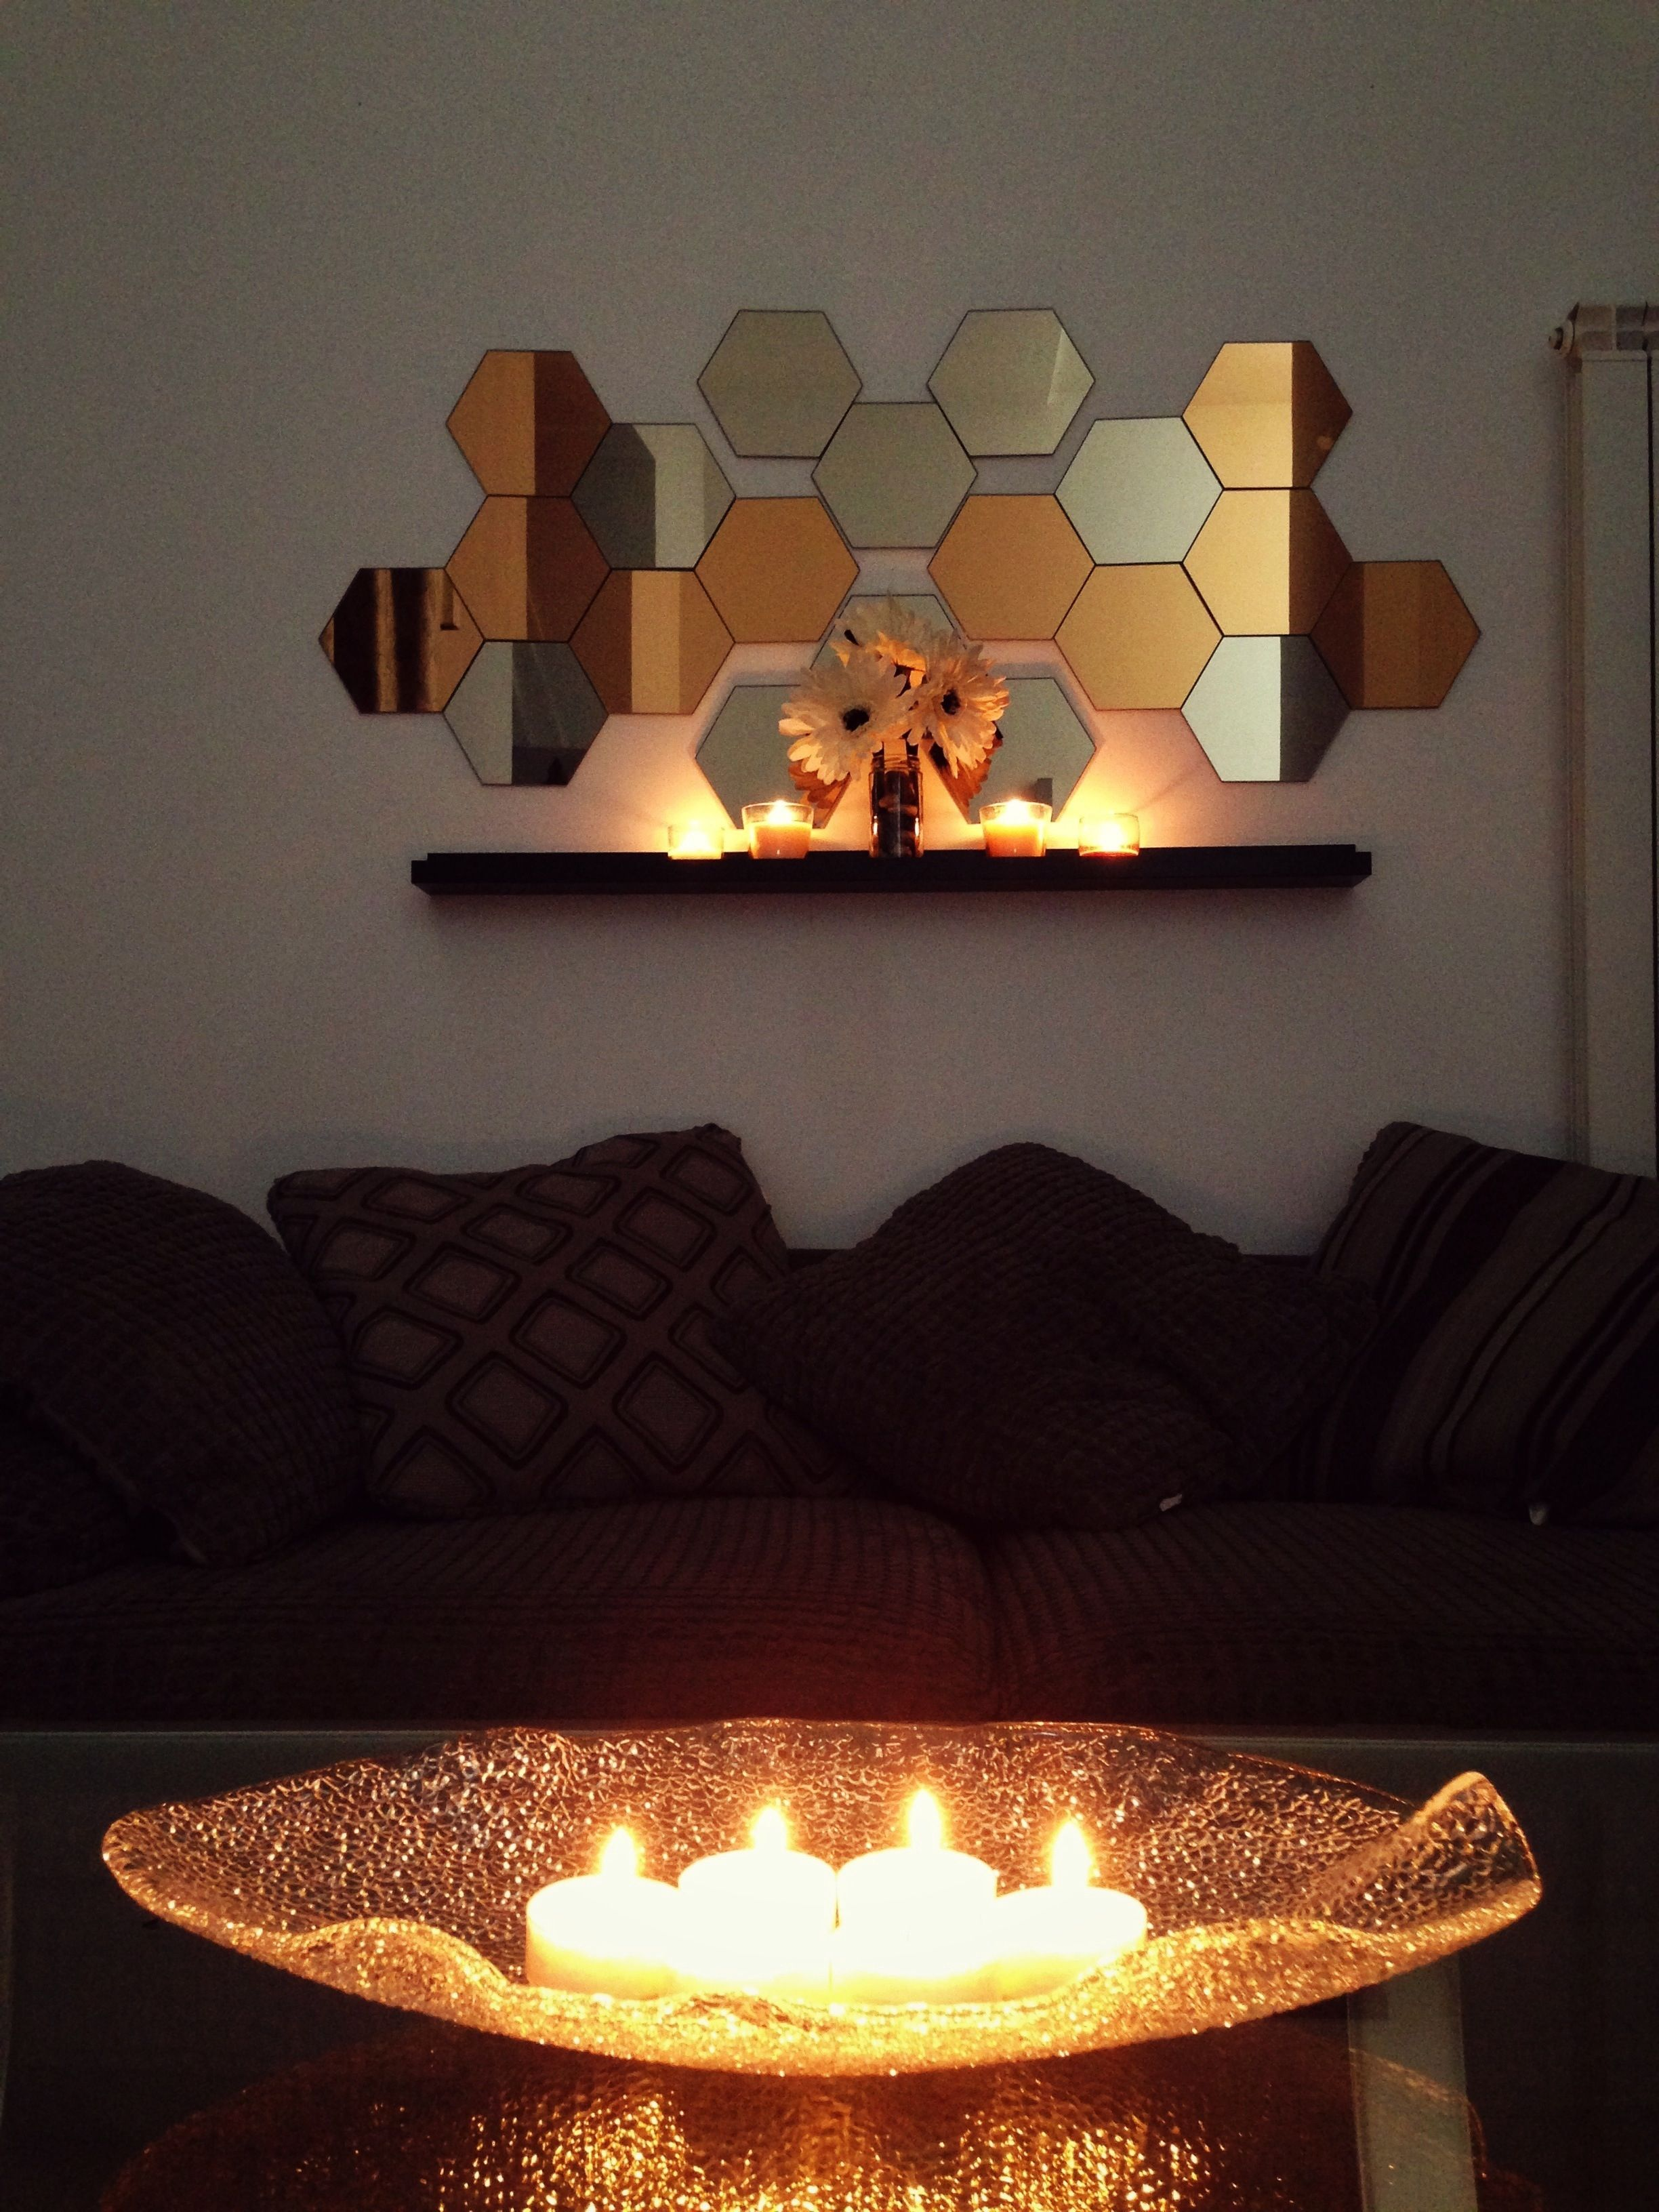 My Diy Honefoss Mirror From Ikea Candles In Fireplace Decor